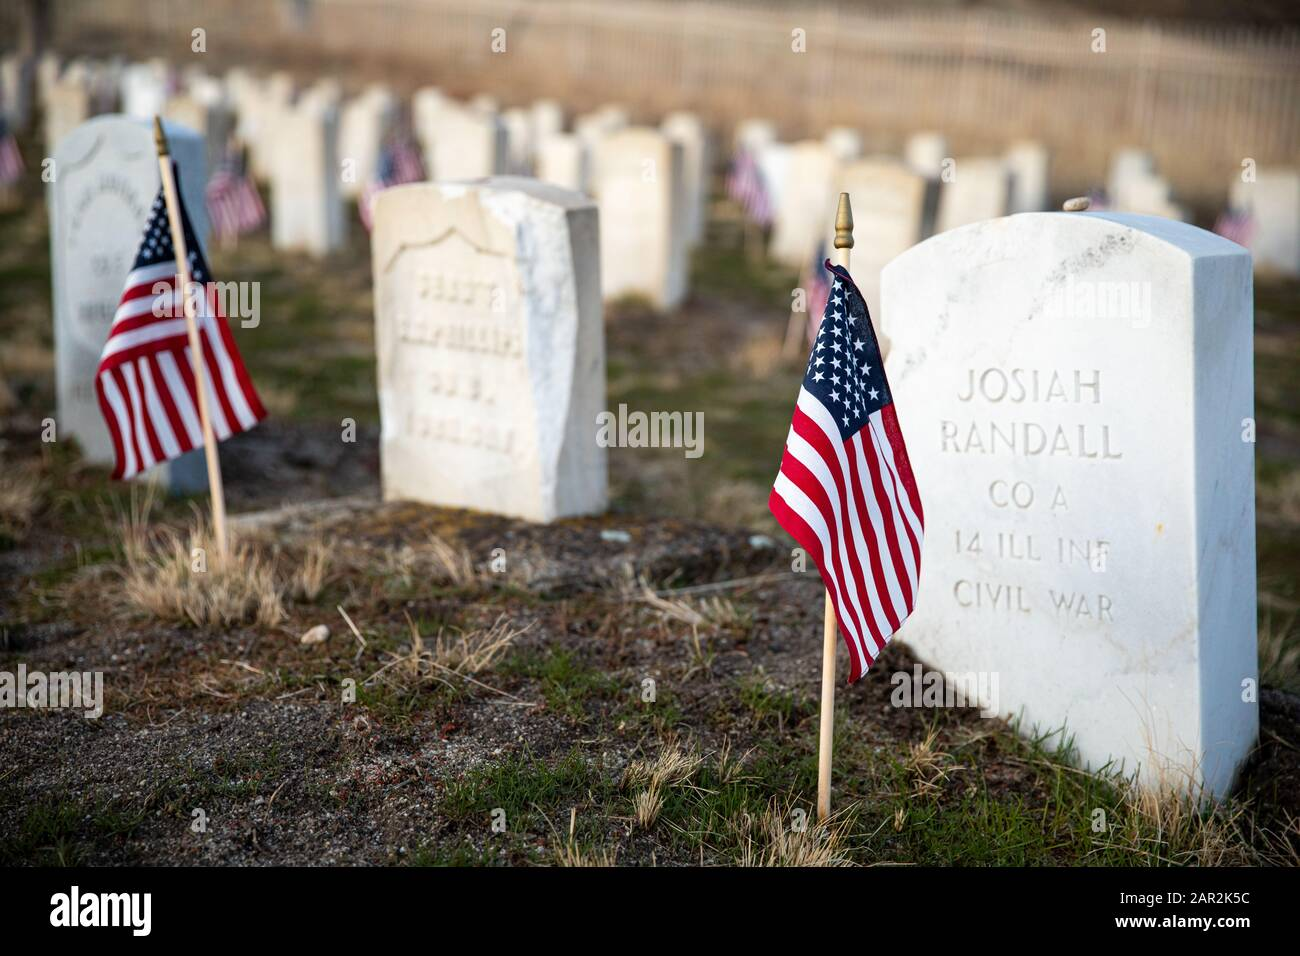 American Cemetary that holds veterans of the civil war Stock Photo